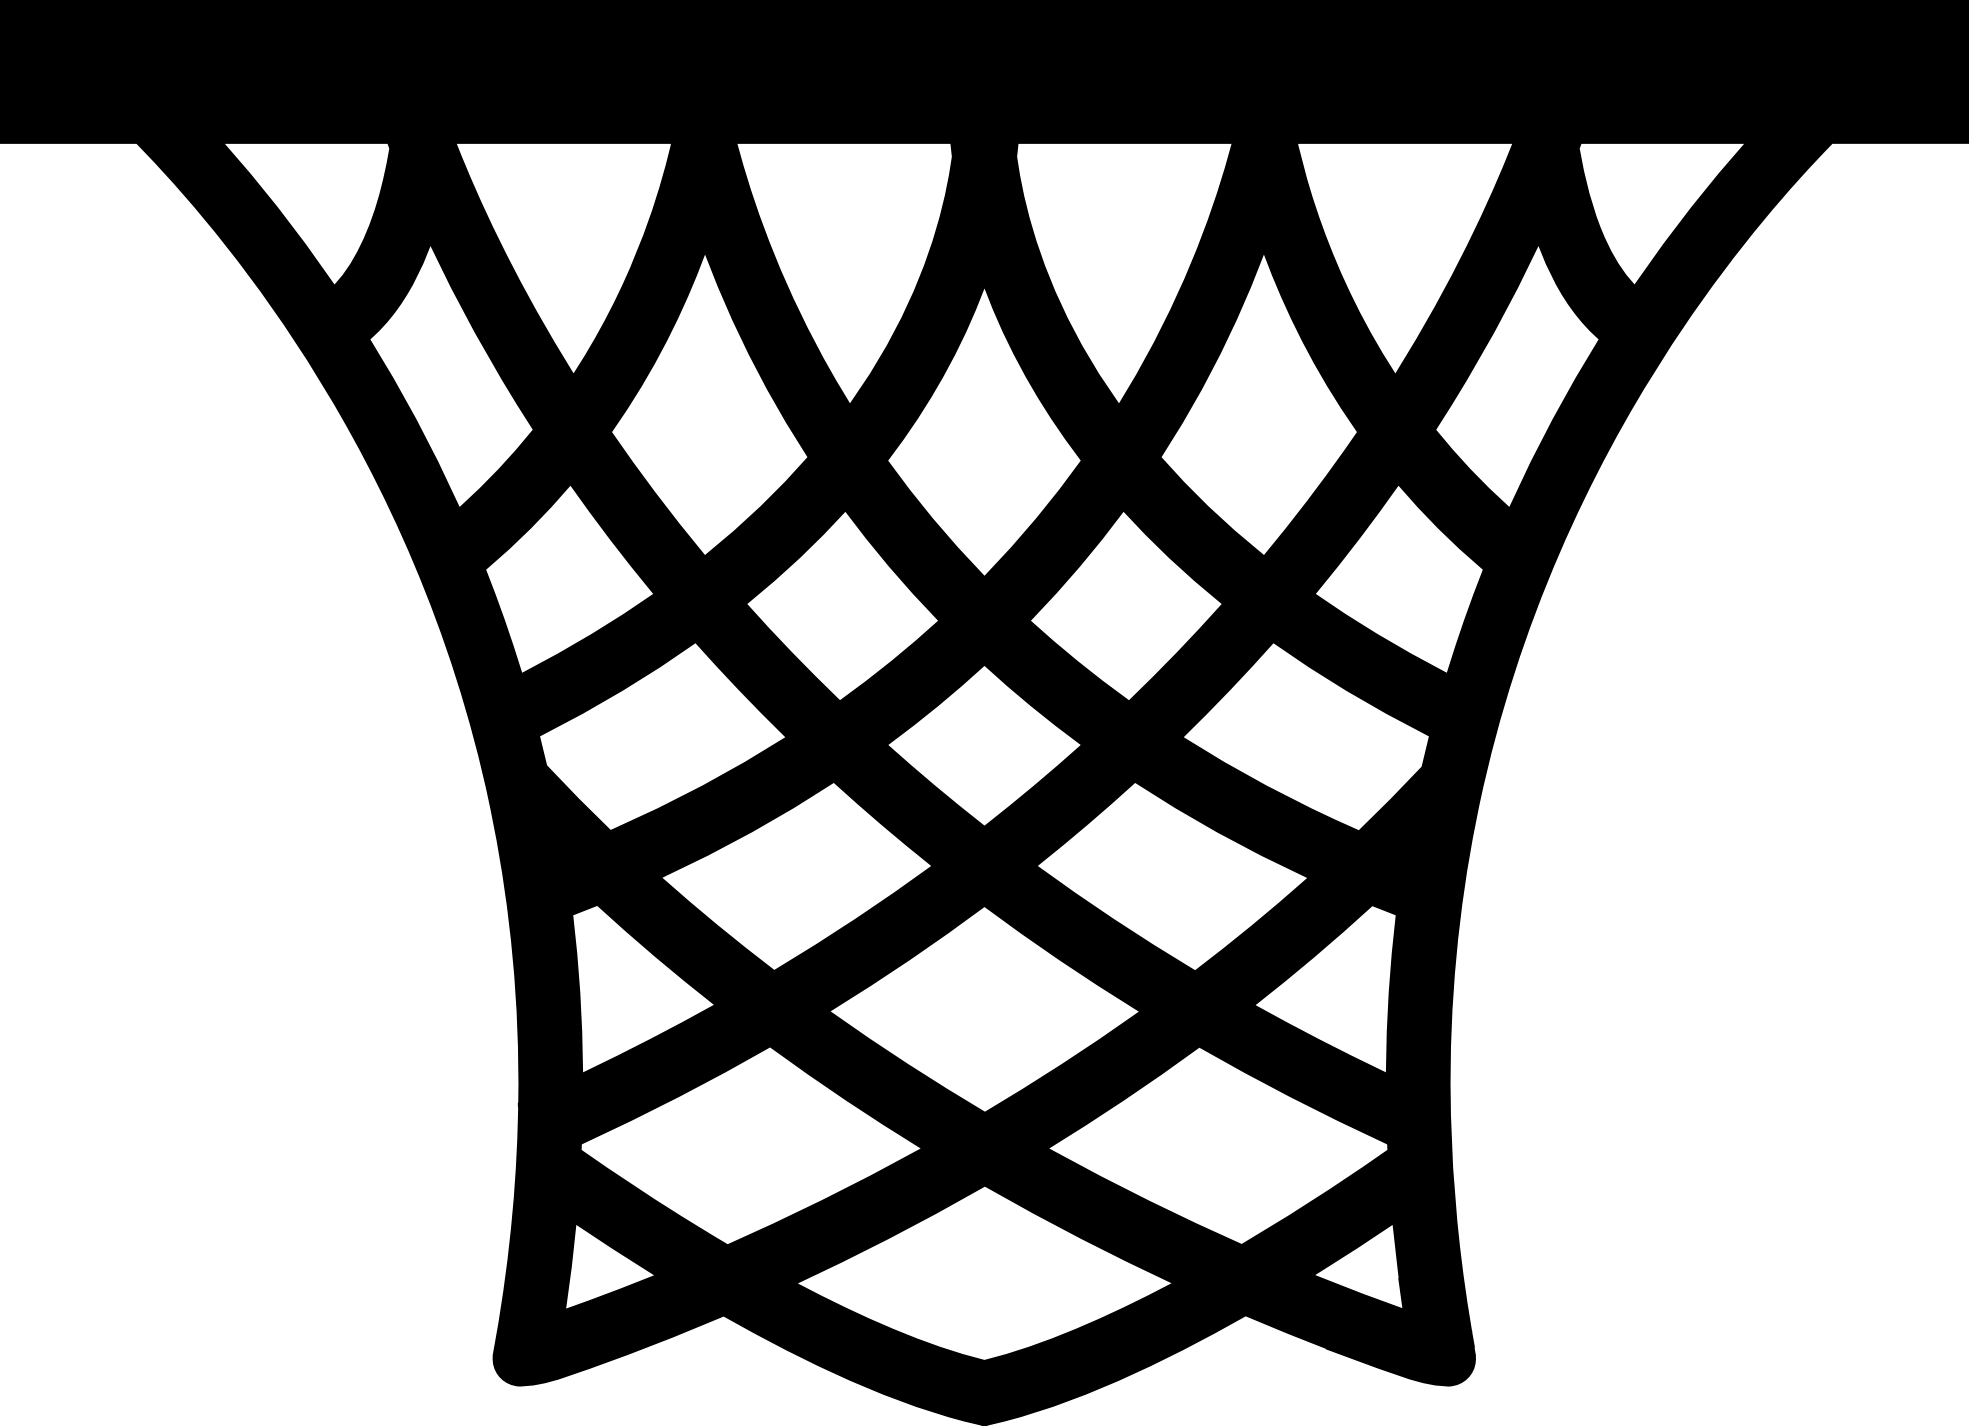 Basketball hoop side view clipart black and white download 28+ Collection of Basketball Goal Clipart Black And White | High ... black and white download